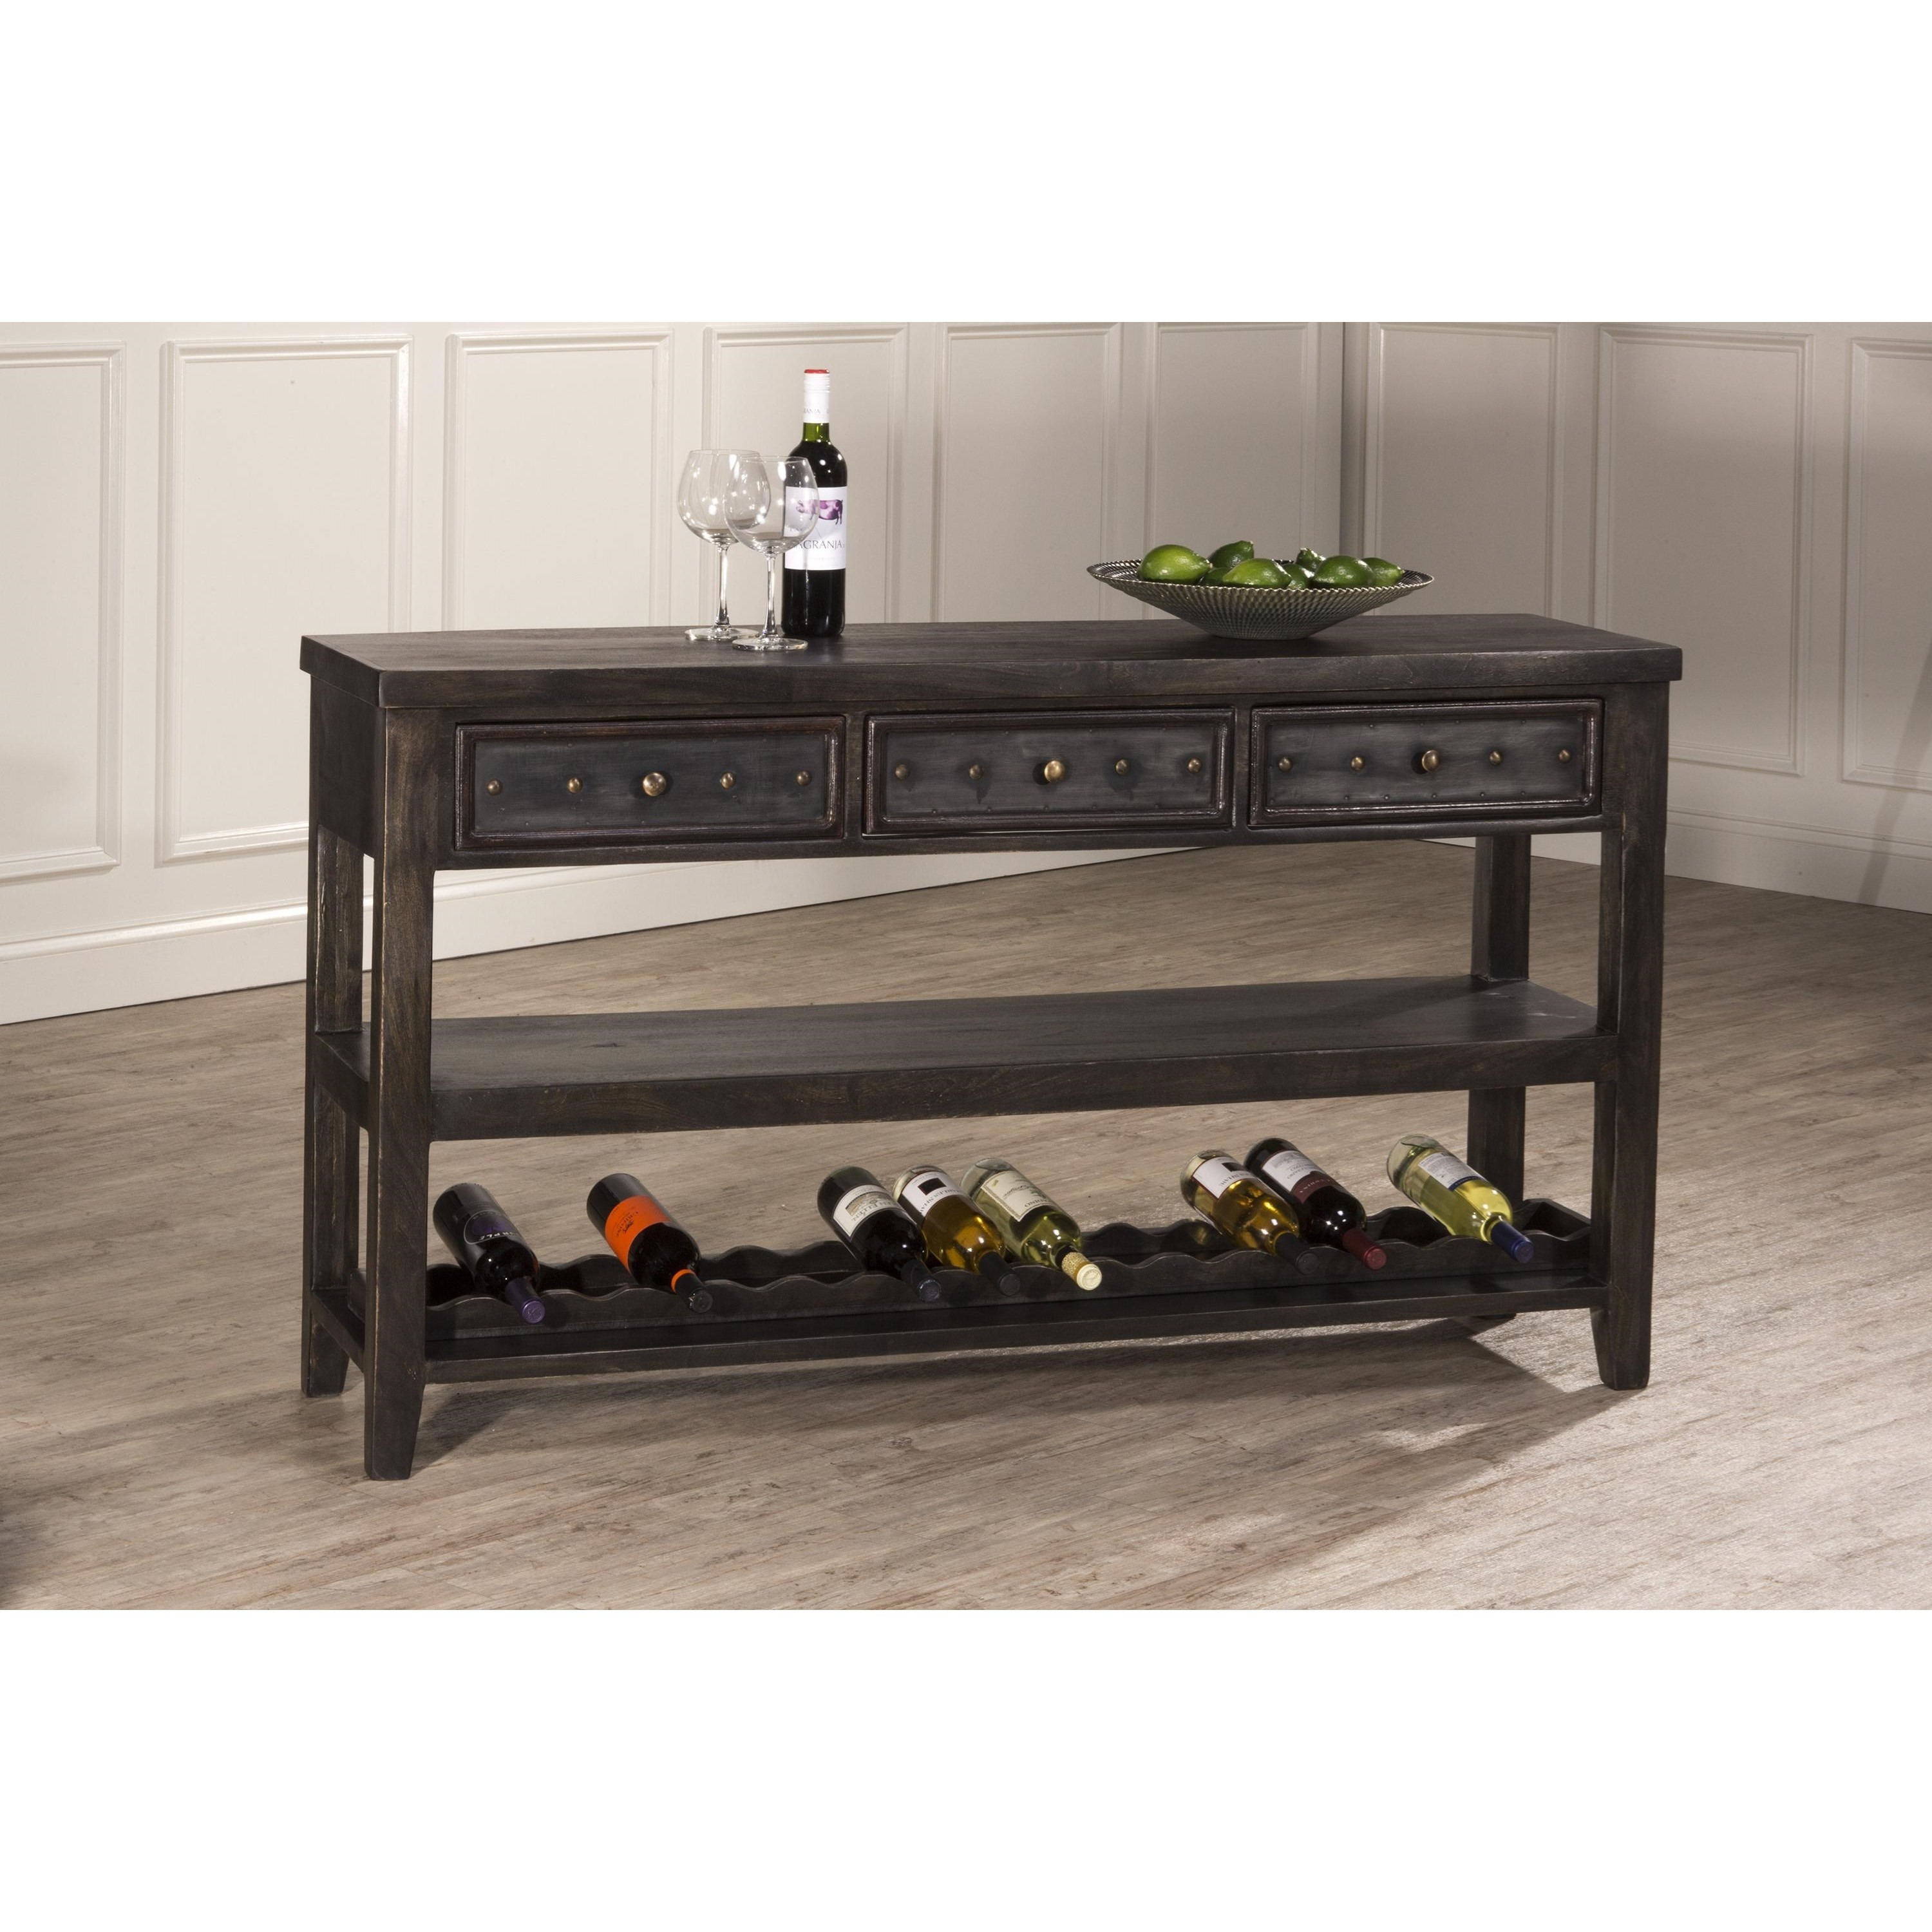 Sofa Table with Wine Rack and Studded Hardware by Hillsdale